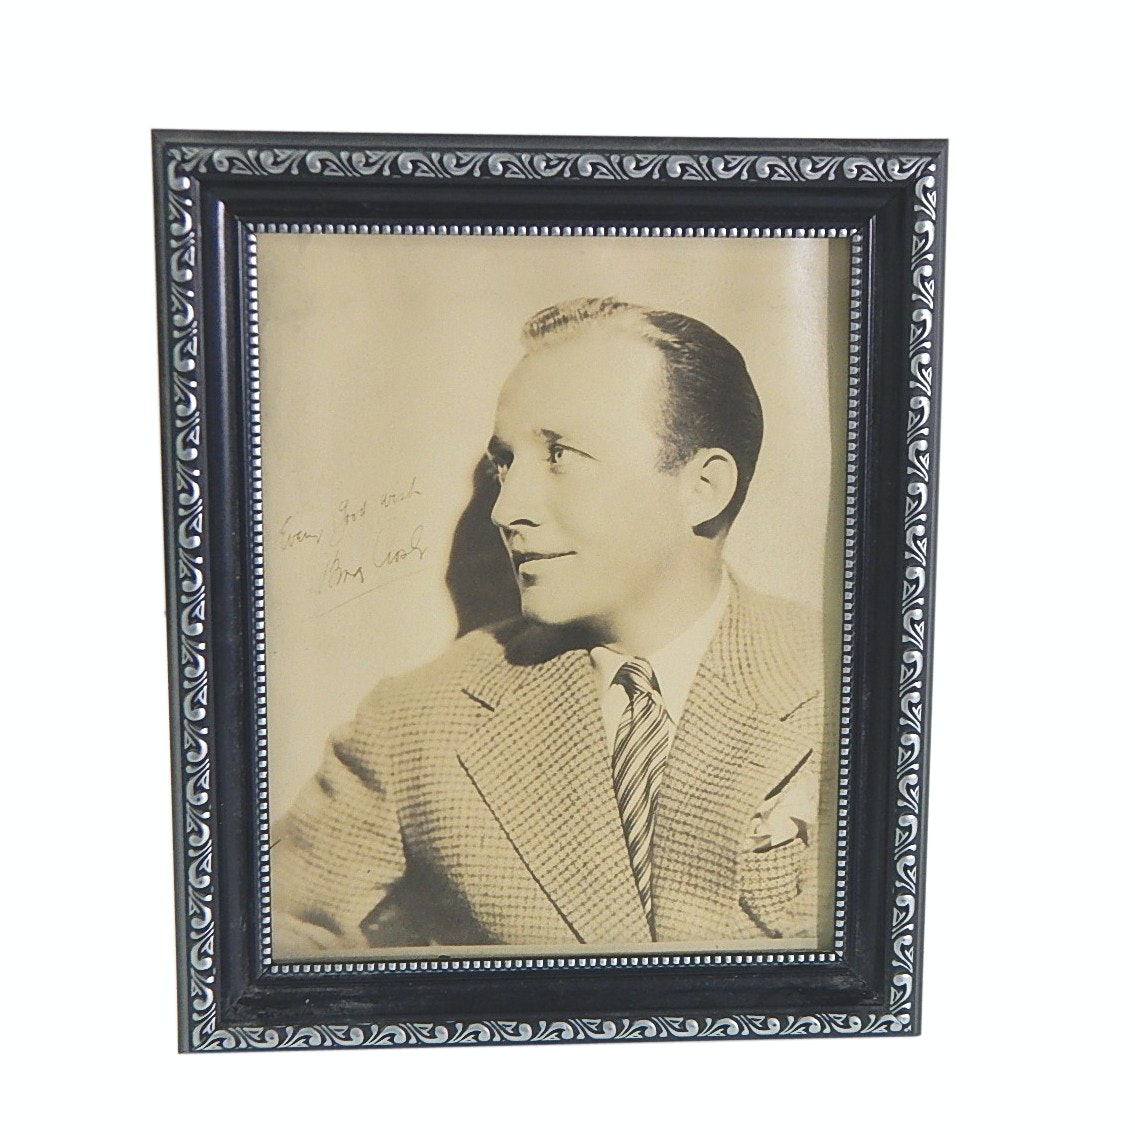 Vintage Bing Crosby Signed Photograph